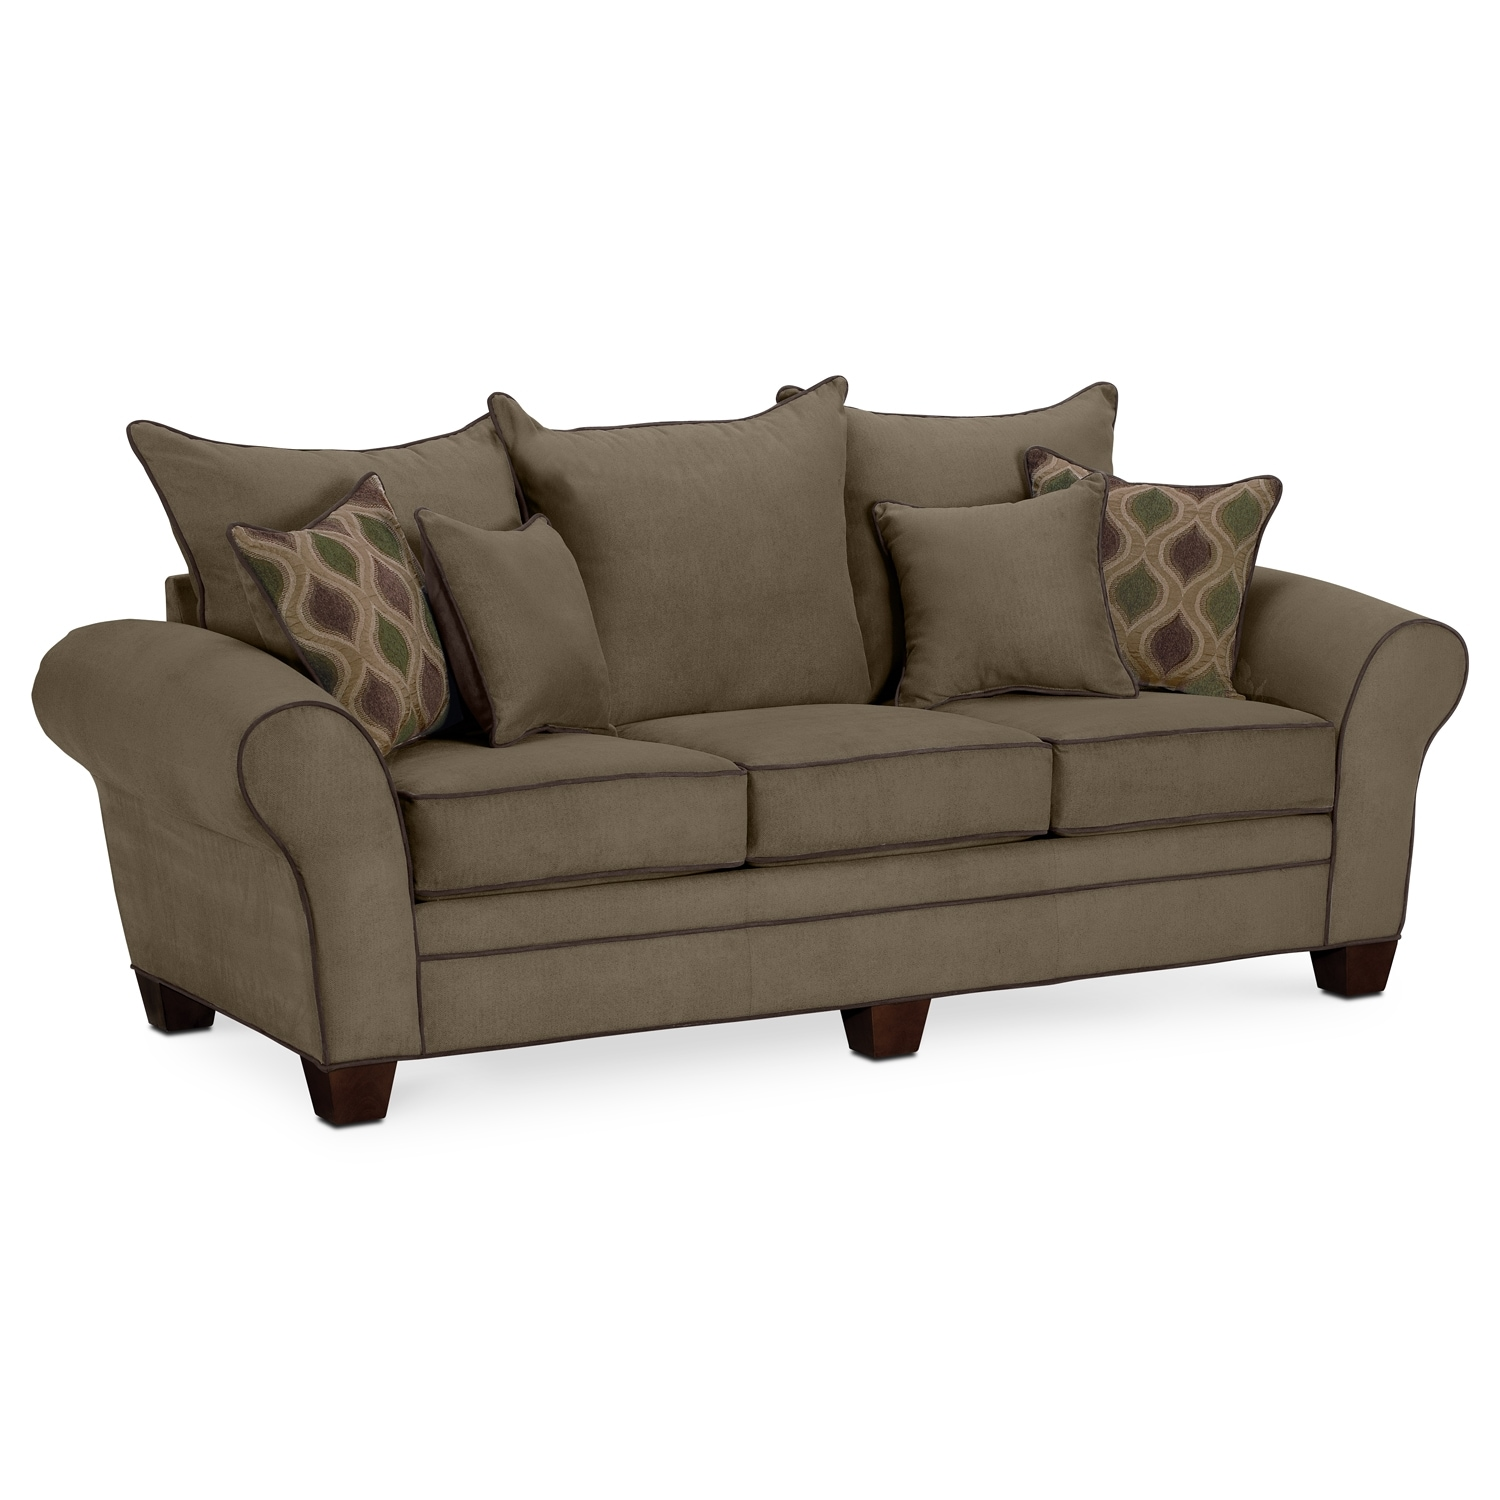 Rendezvous sofa olive value city furniture Couches and loveseats